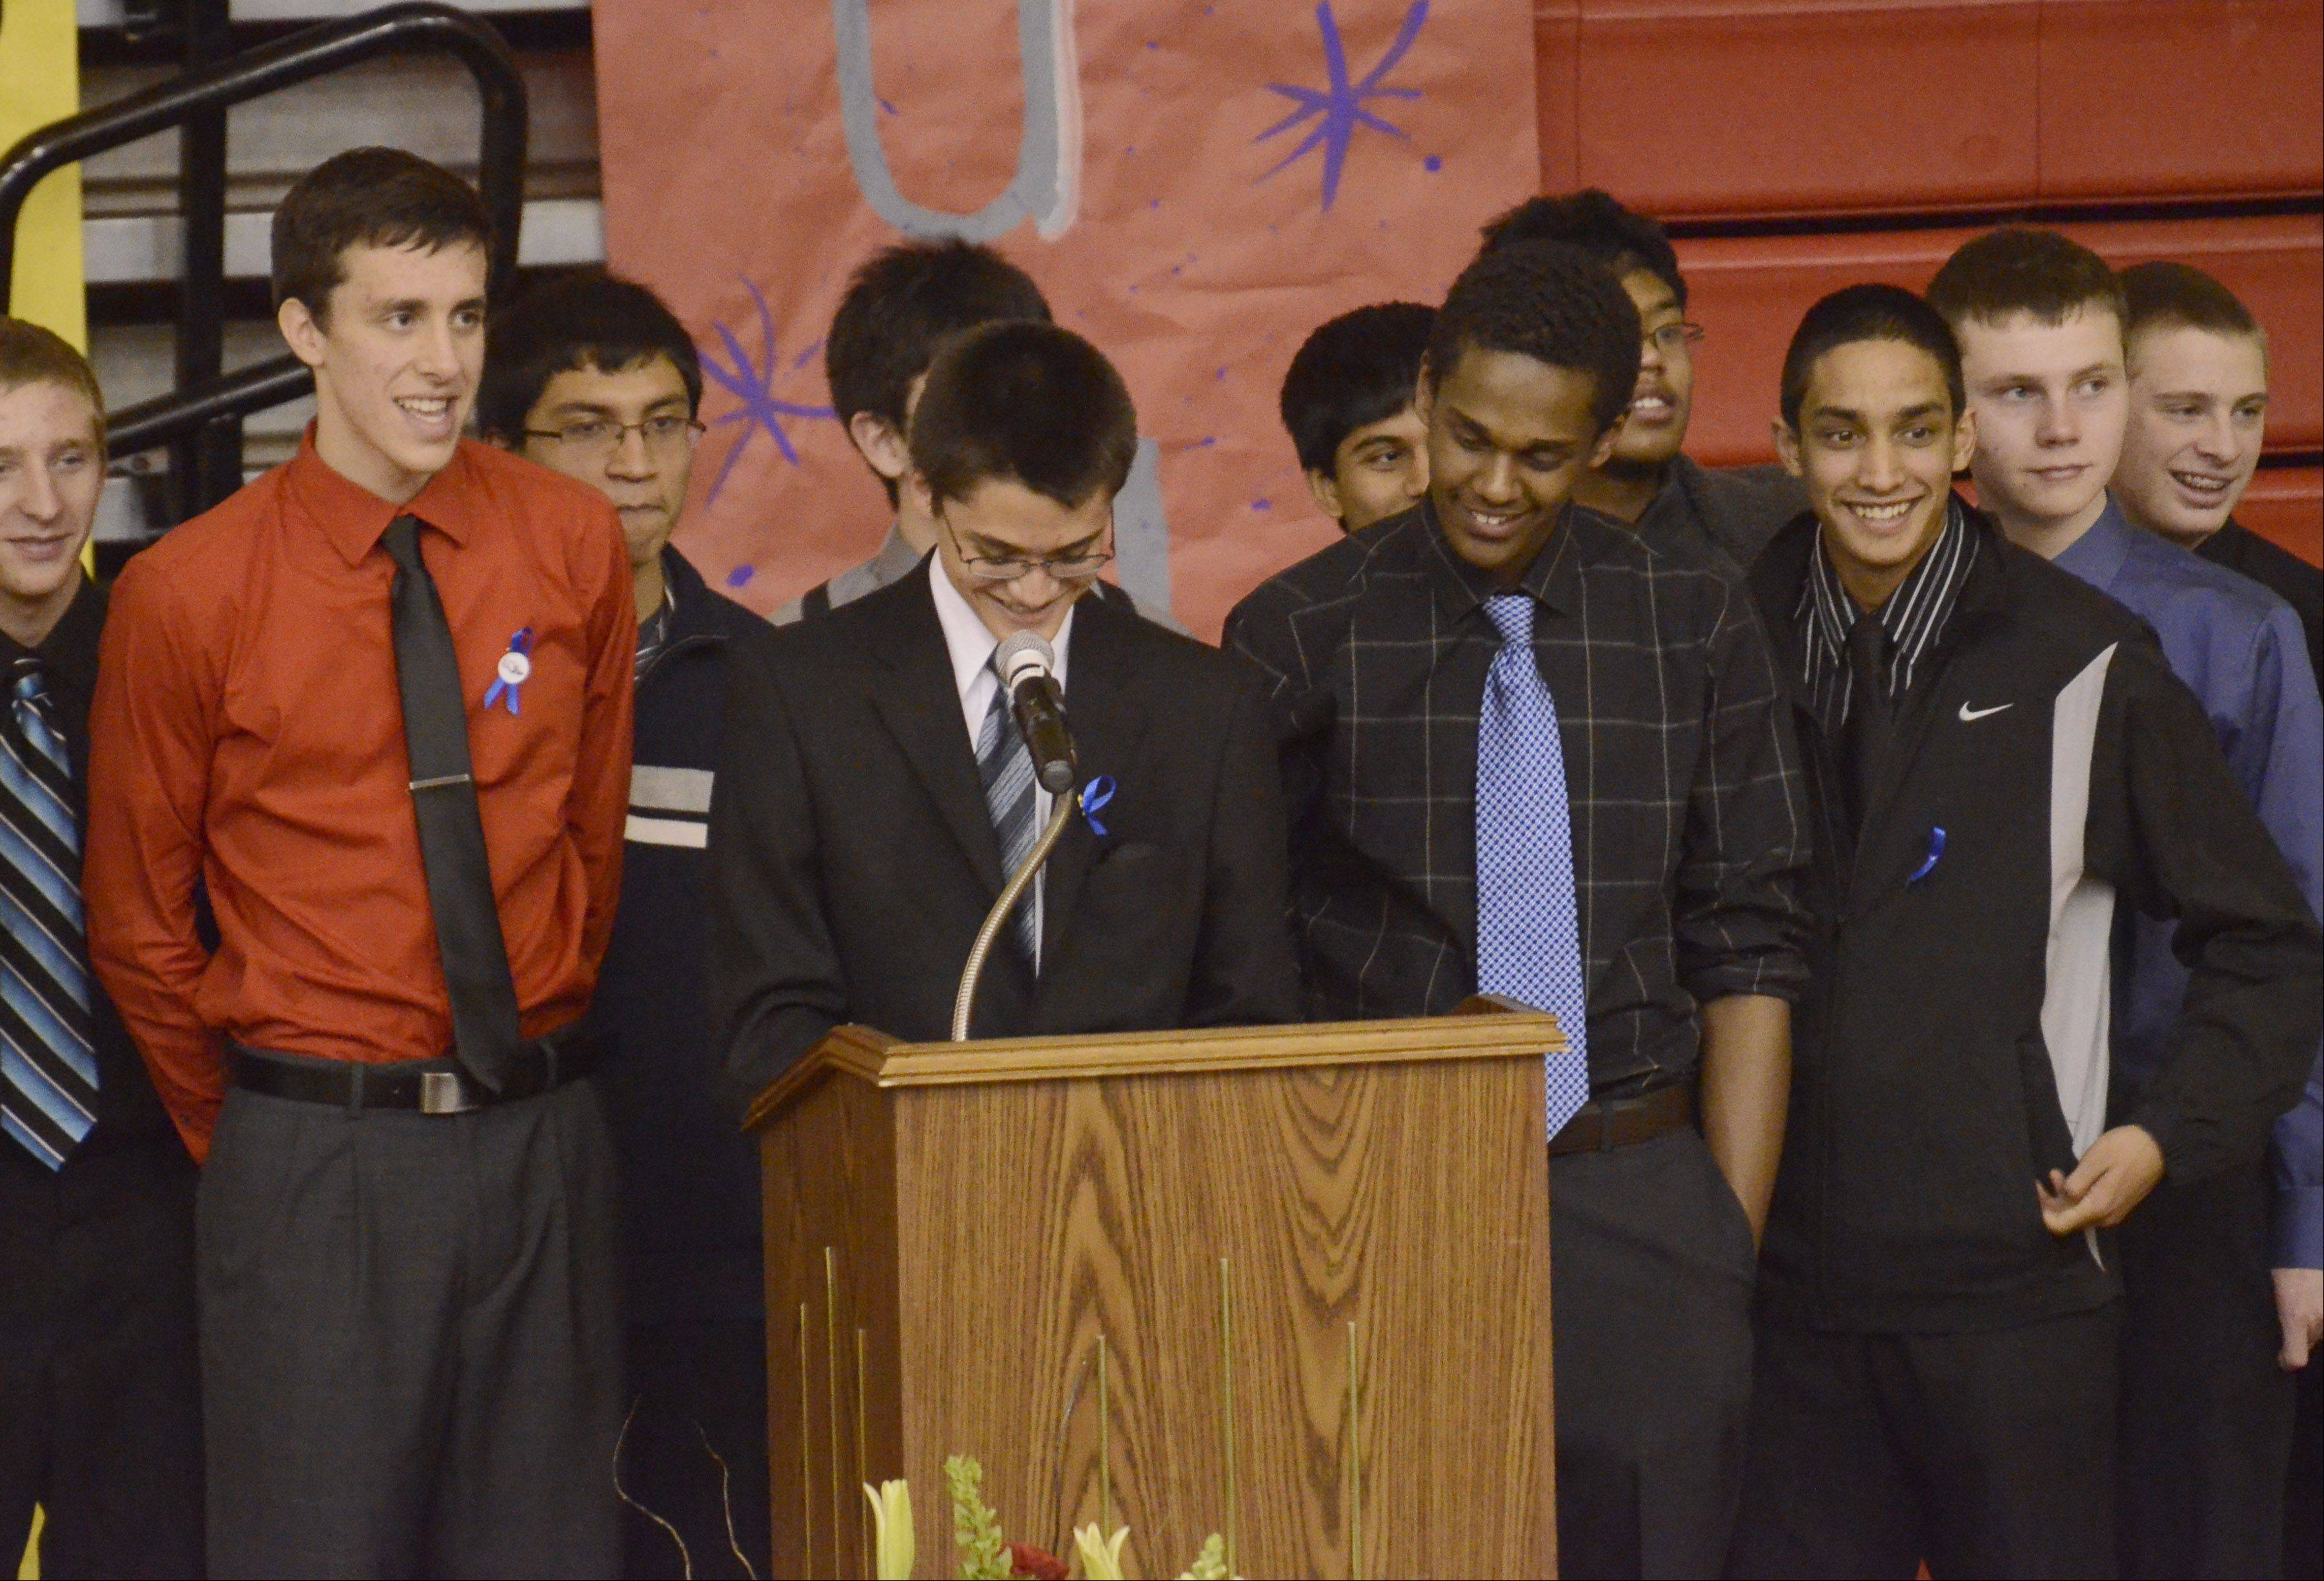 Stephen Piller talks about the fun times with his friend Mikias Tibebu, a Schaumburg student who was killed by a hit-and-run driver. Standing to the right of Piller are Mikias' brother Nebeyu Tibebu and members of the cross country team.